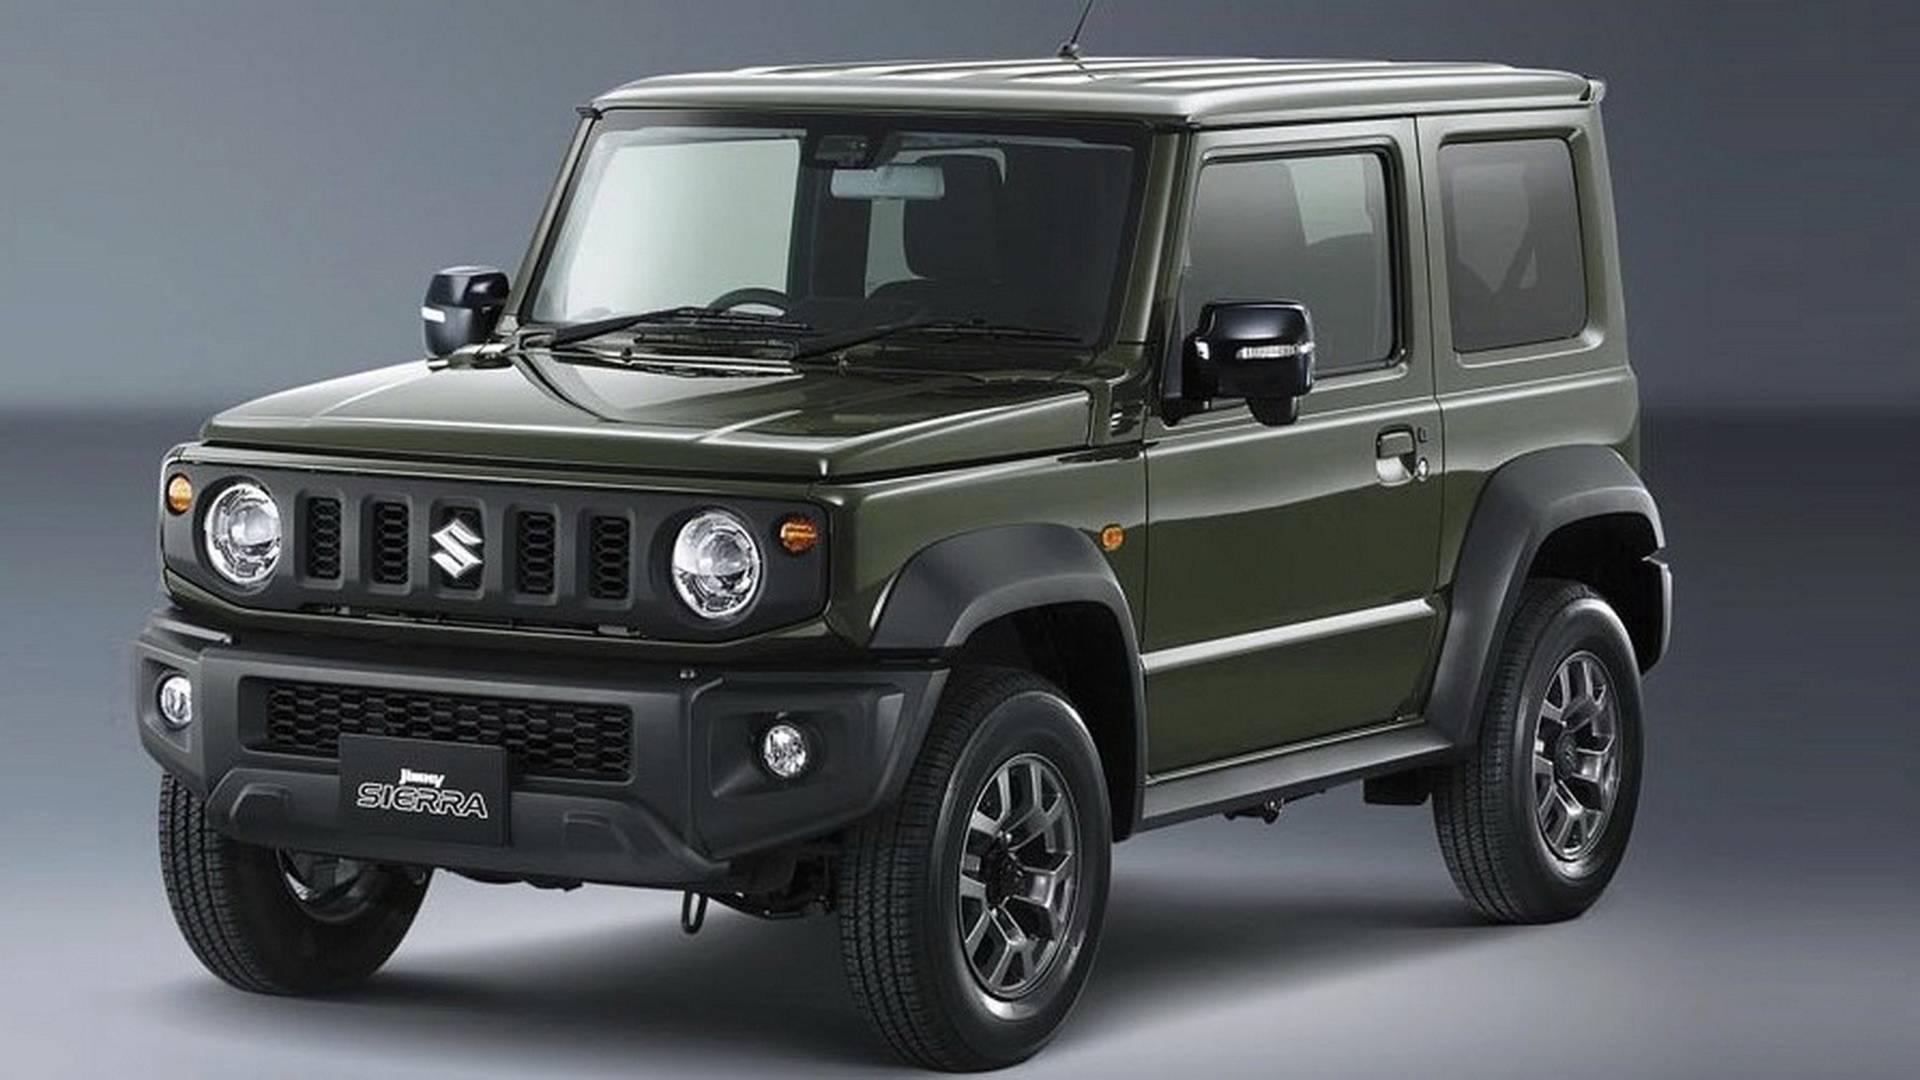 2018 suzuki jimny finally revealed engines range from to 1 5 liters autoevolution. Black Bedroom Furniture Sets. Home Design Ideas